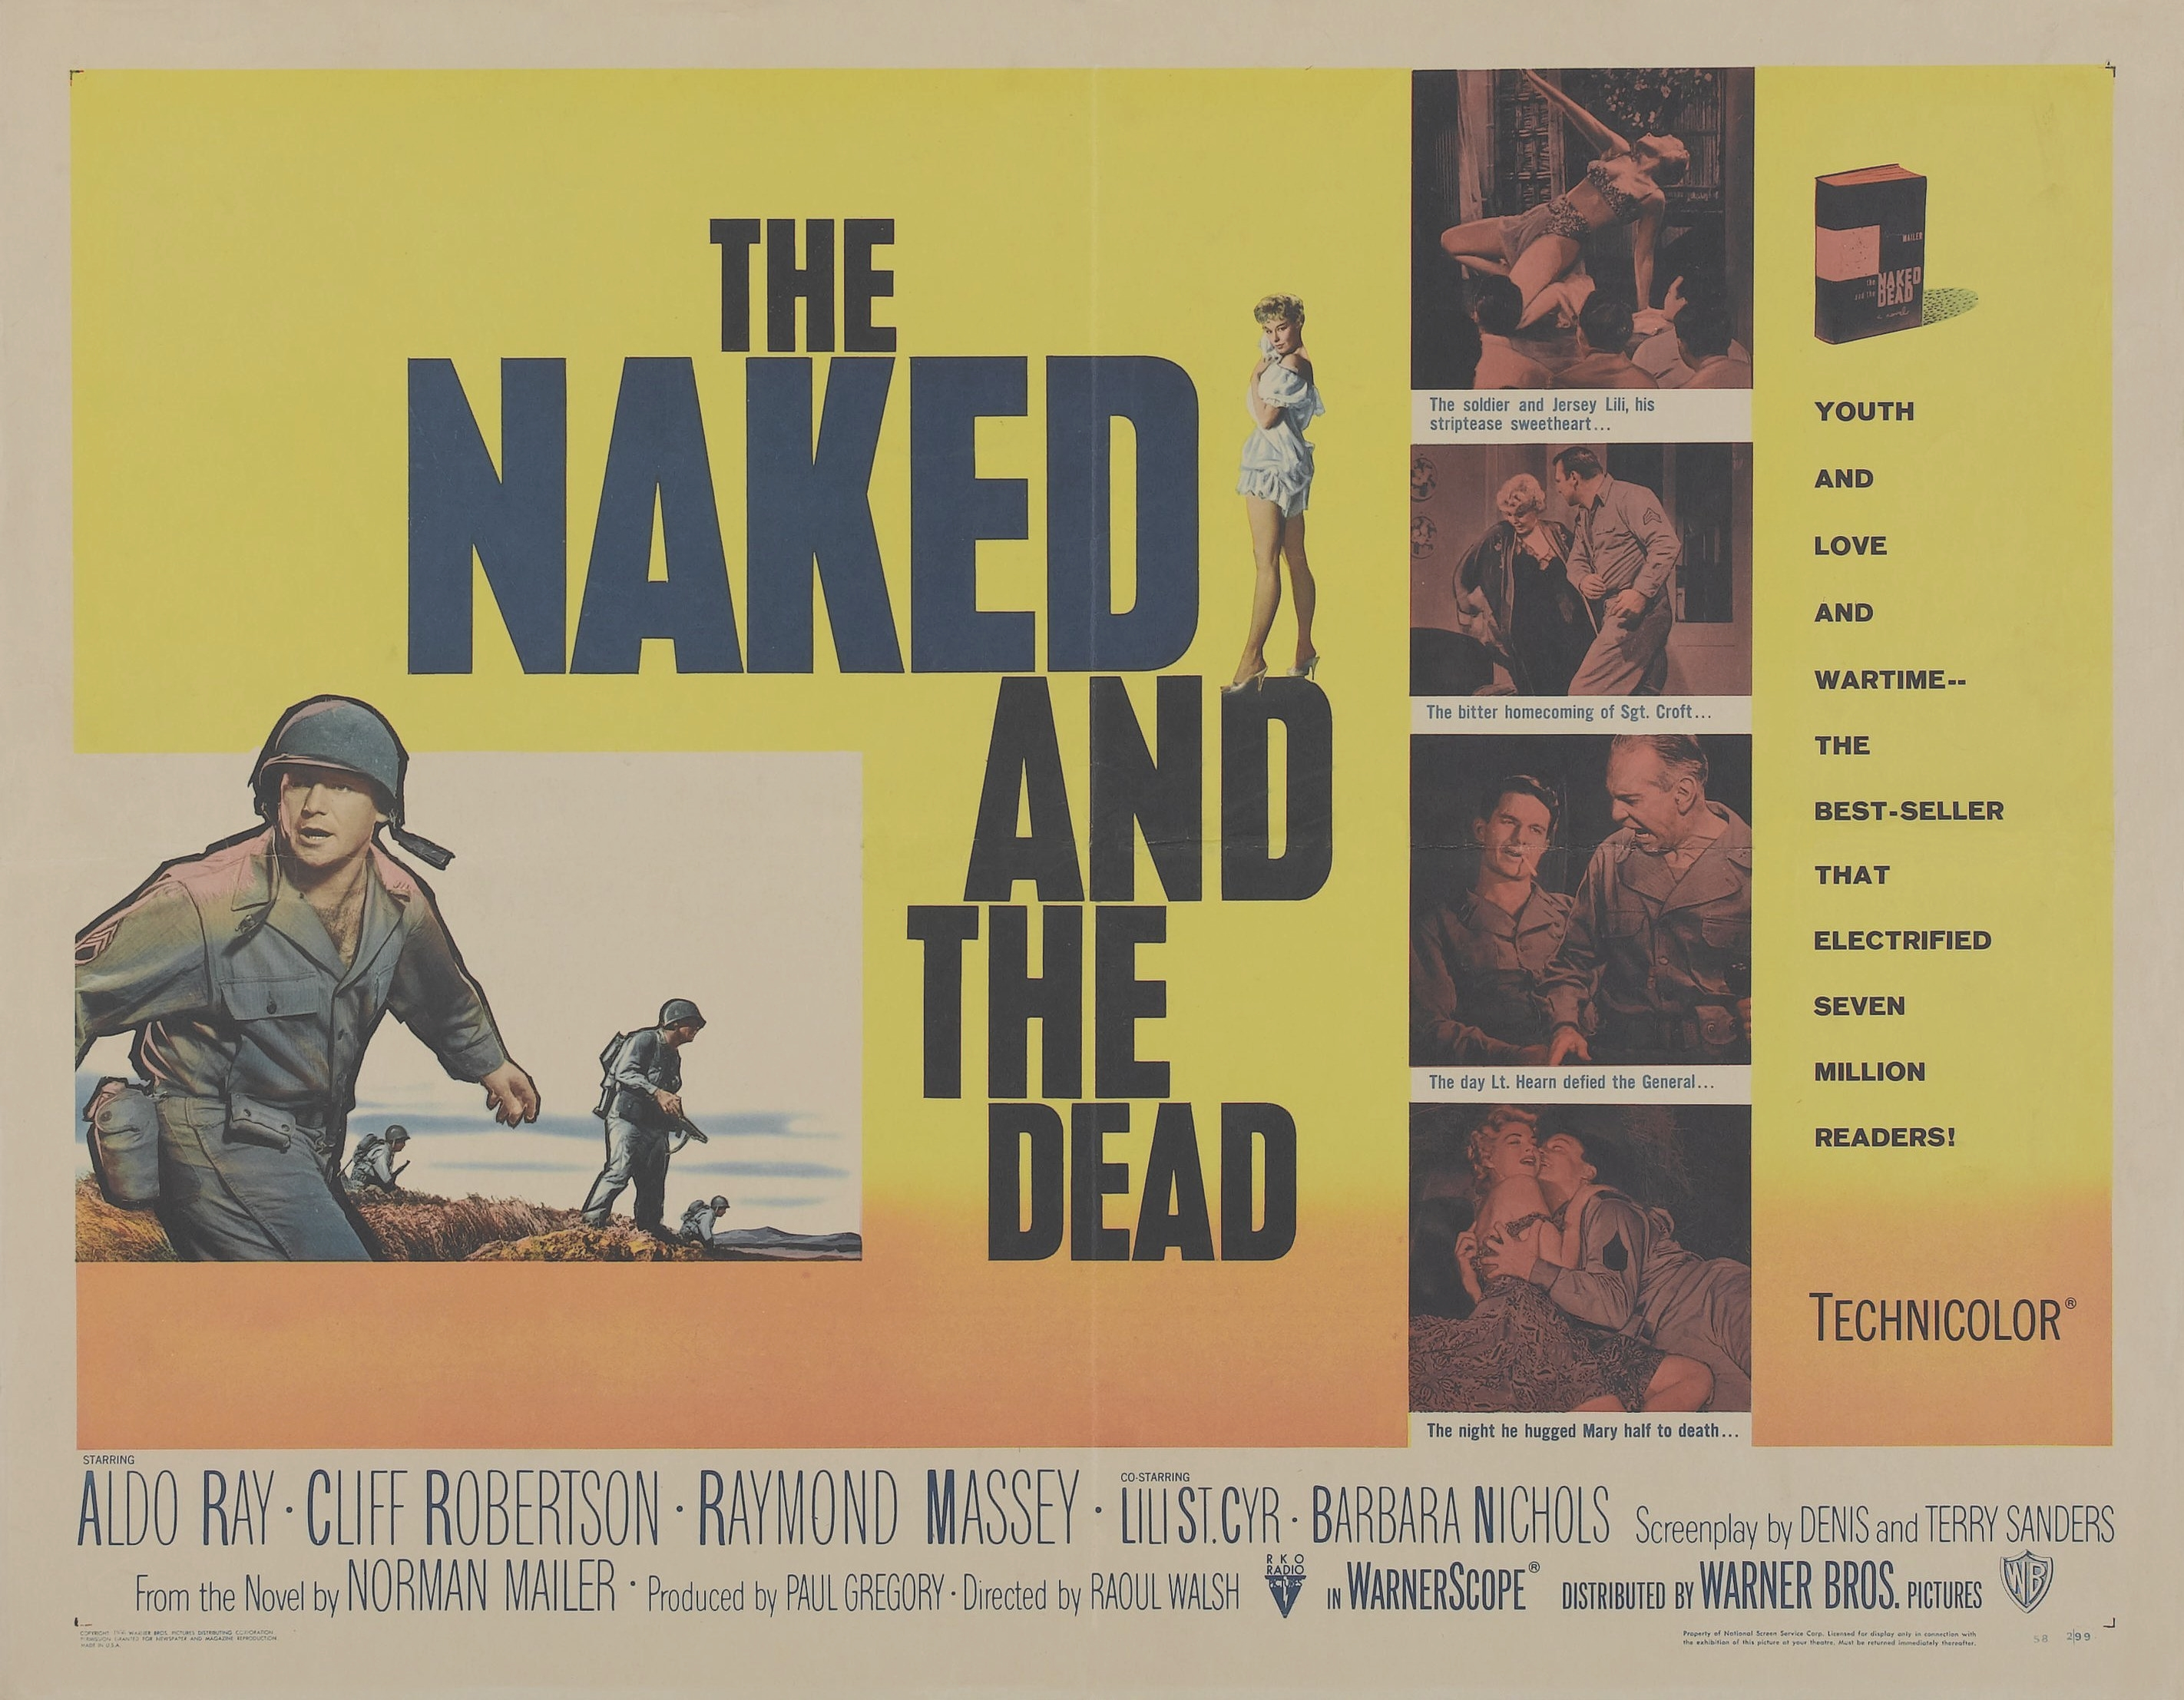 The naked and the dead' and opening line